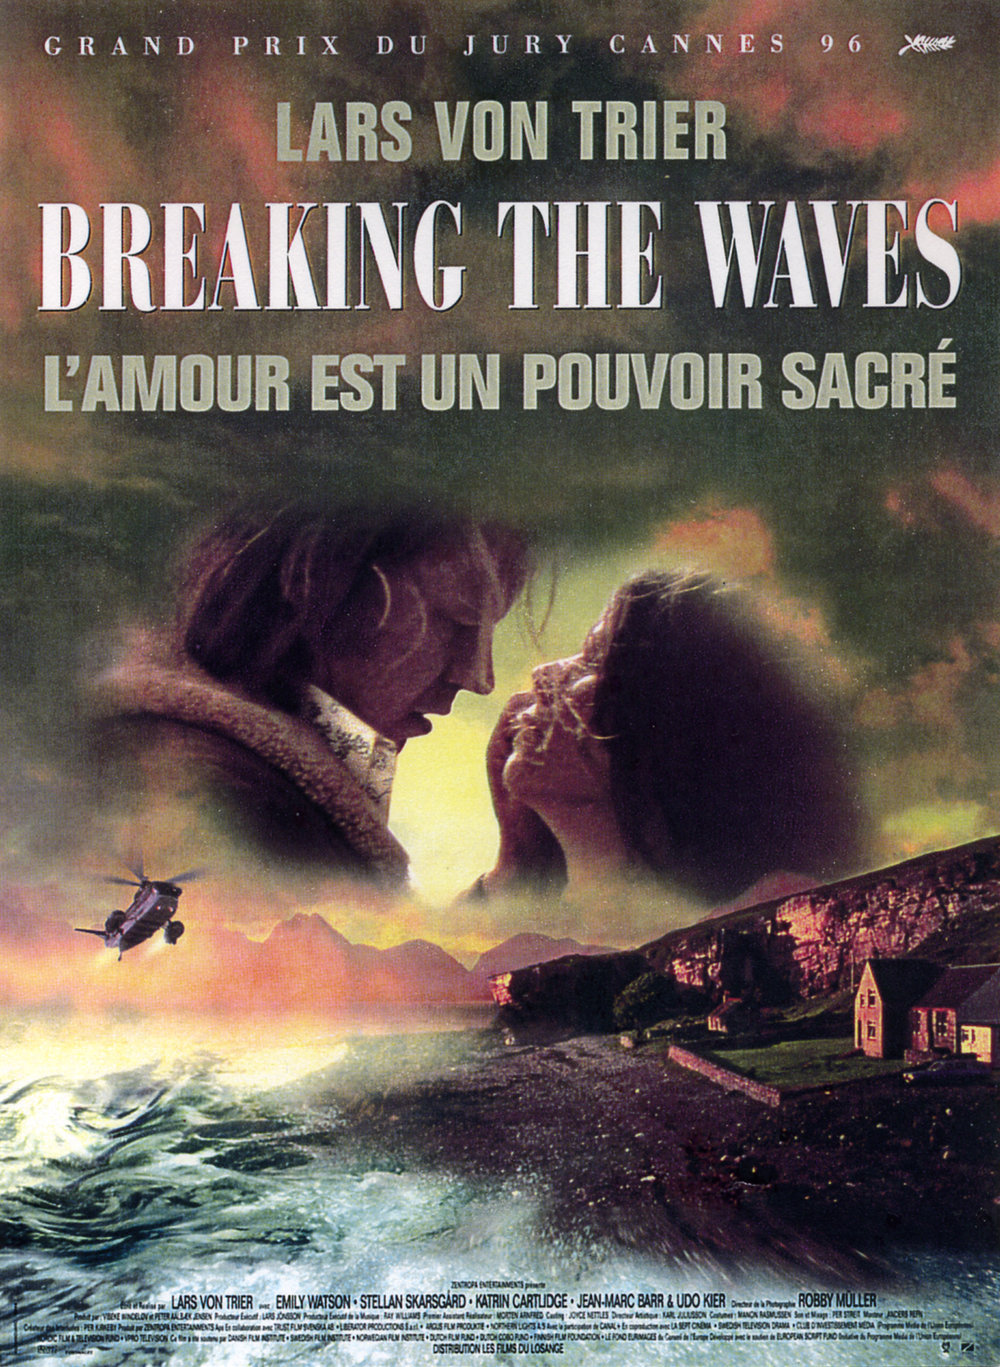 Breaking the waves FR.jpg